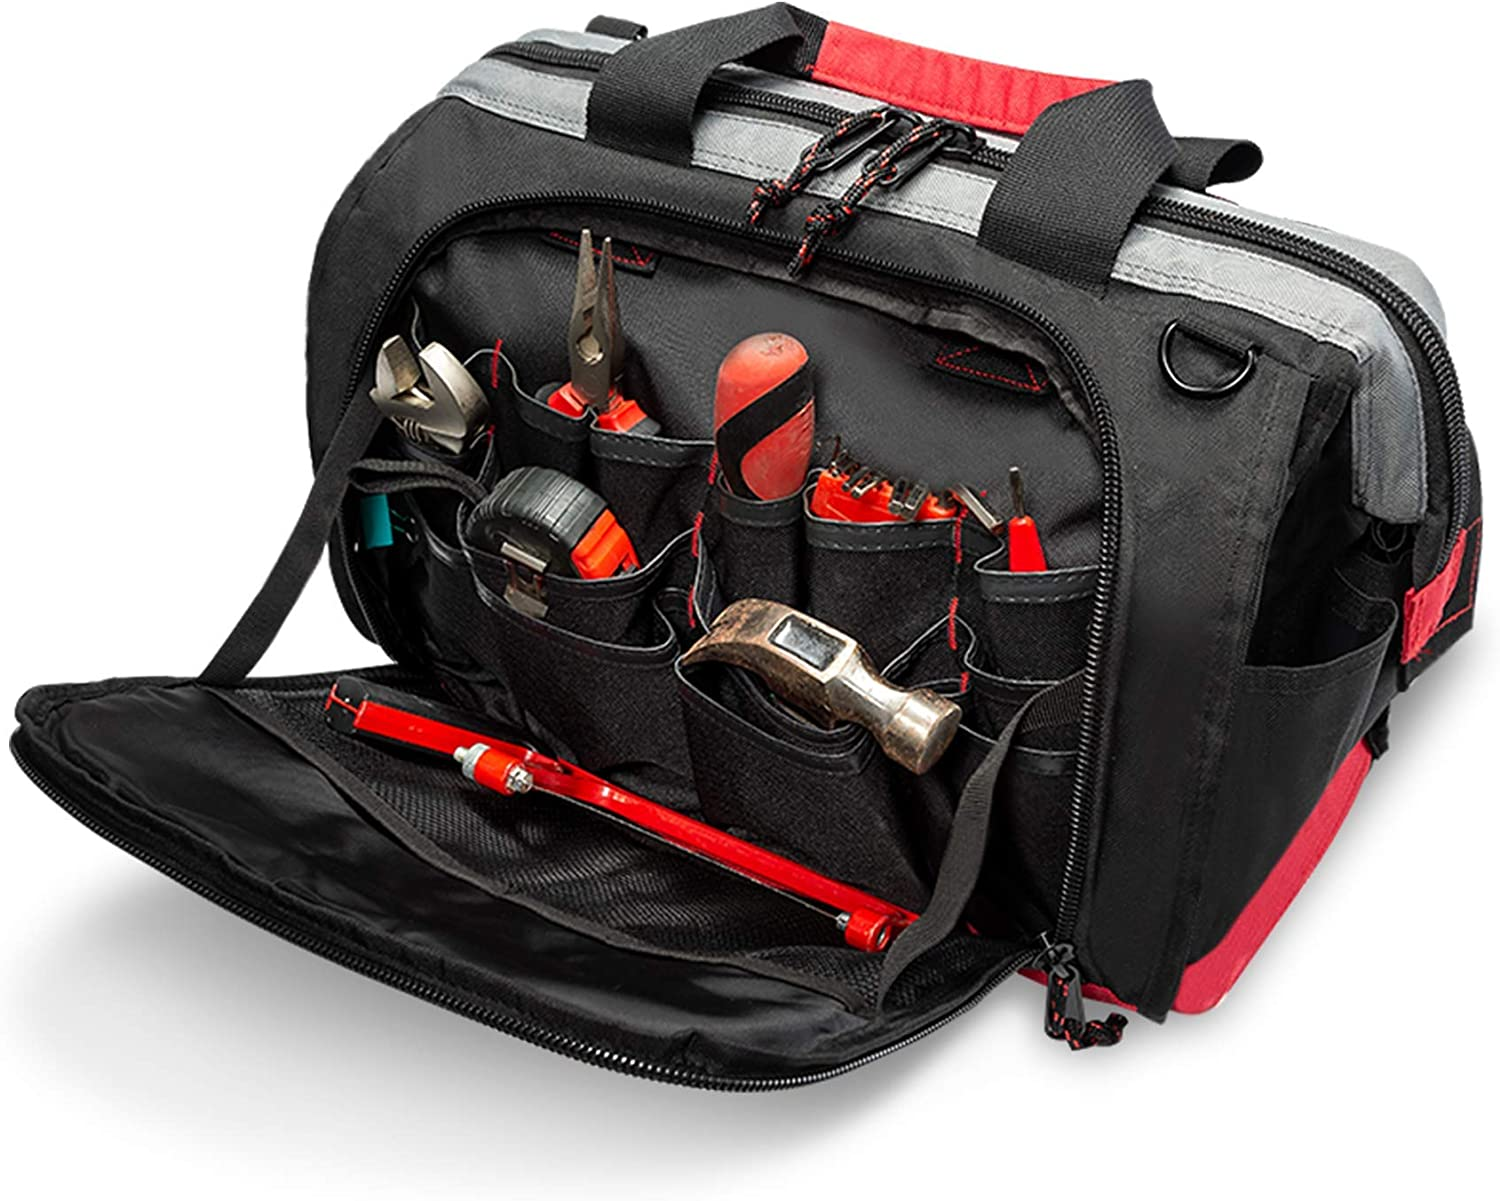 Pnochoo 16in 25 Pockets Wide Mouth Waterproof Tool Bag $25.49 Coupon